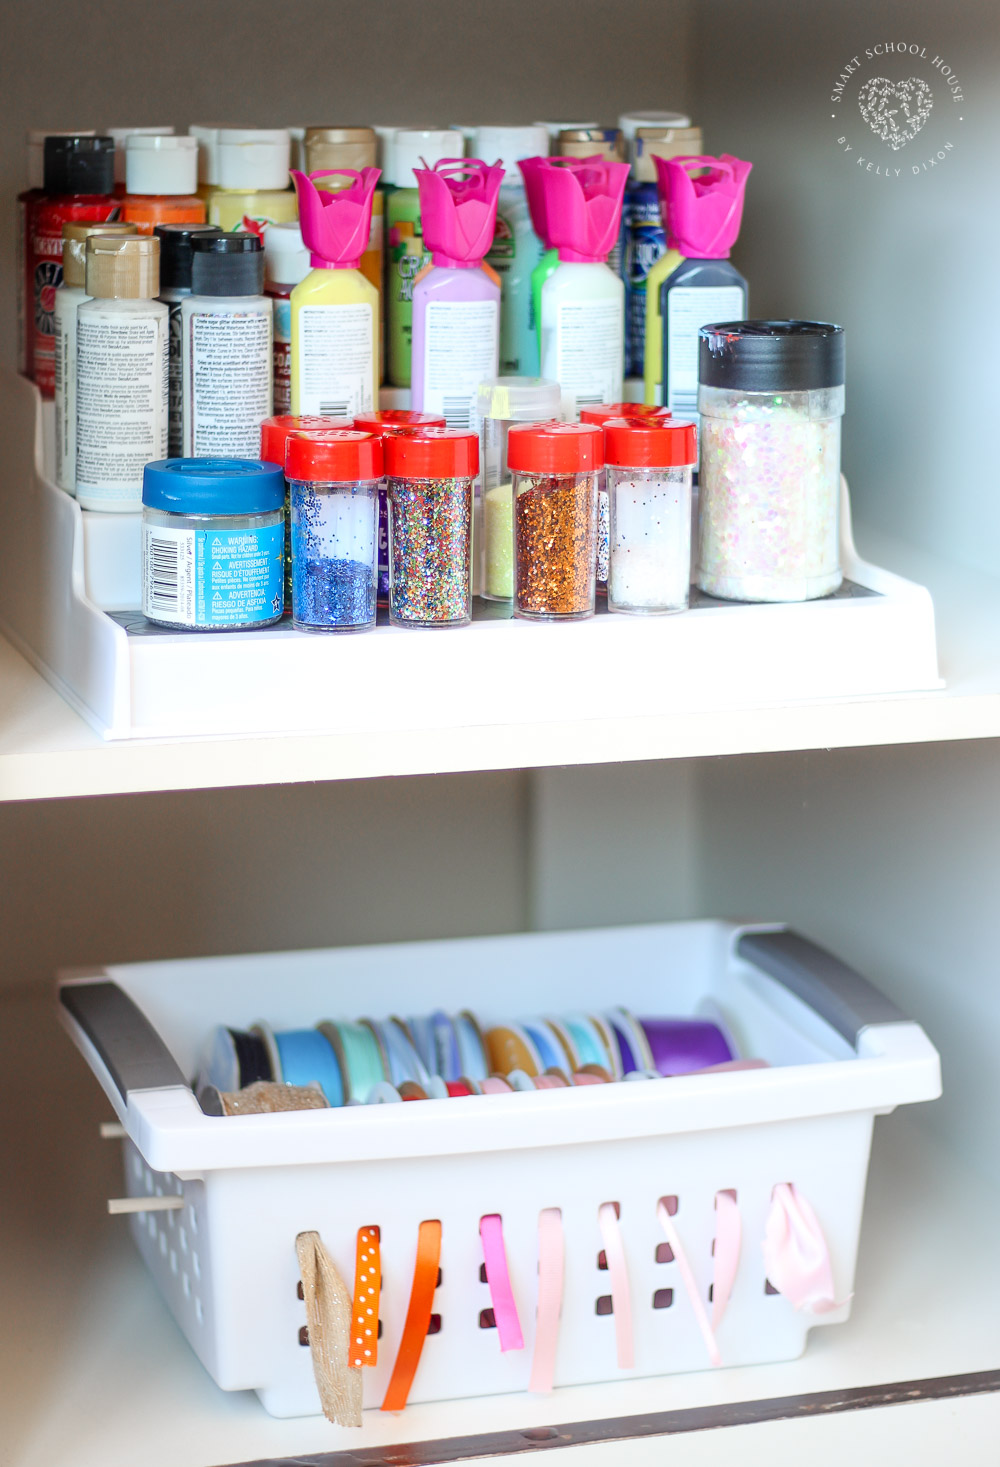 Tidy Tips and Organization - use a simple spice rack to store paint and glitter. No more messes! Everything stays neat and tidy. More must-see tips here. #CraftRoomOrganization #TidyTips #OrganizingTips